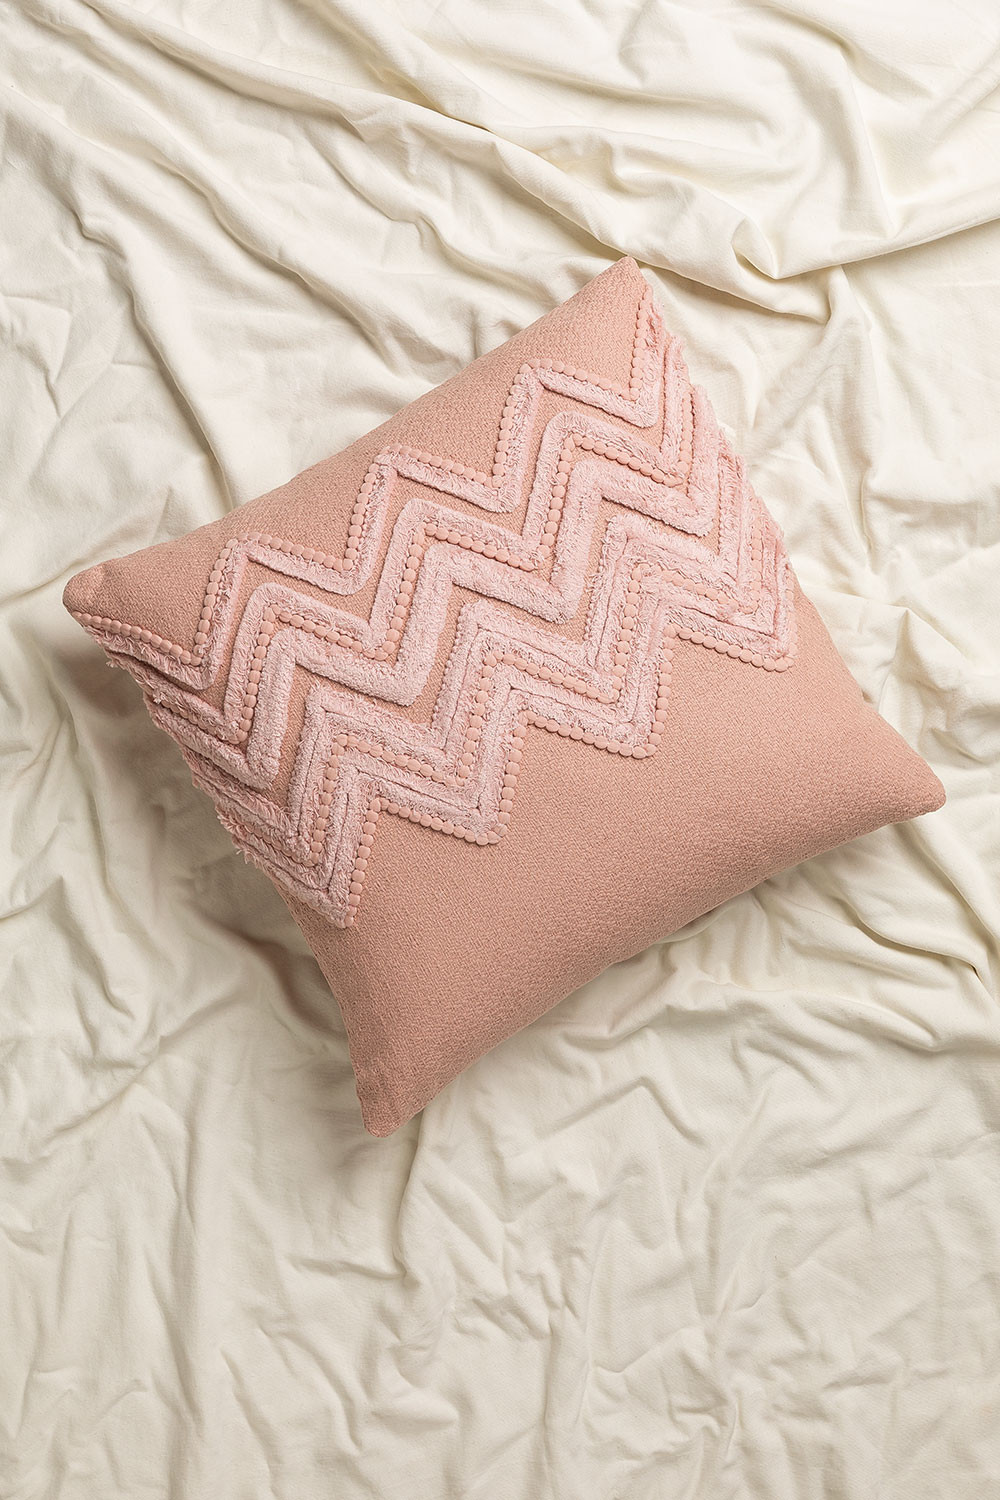 Cushion with Cotton Embroidery (45x45 cm) Mori, gallery image 1